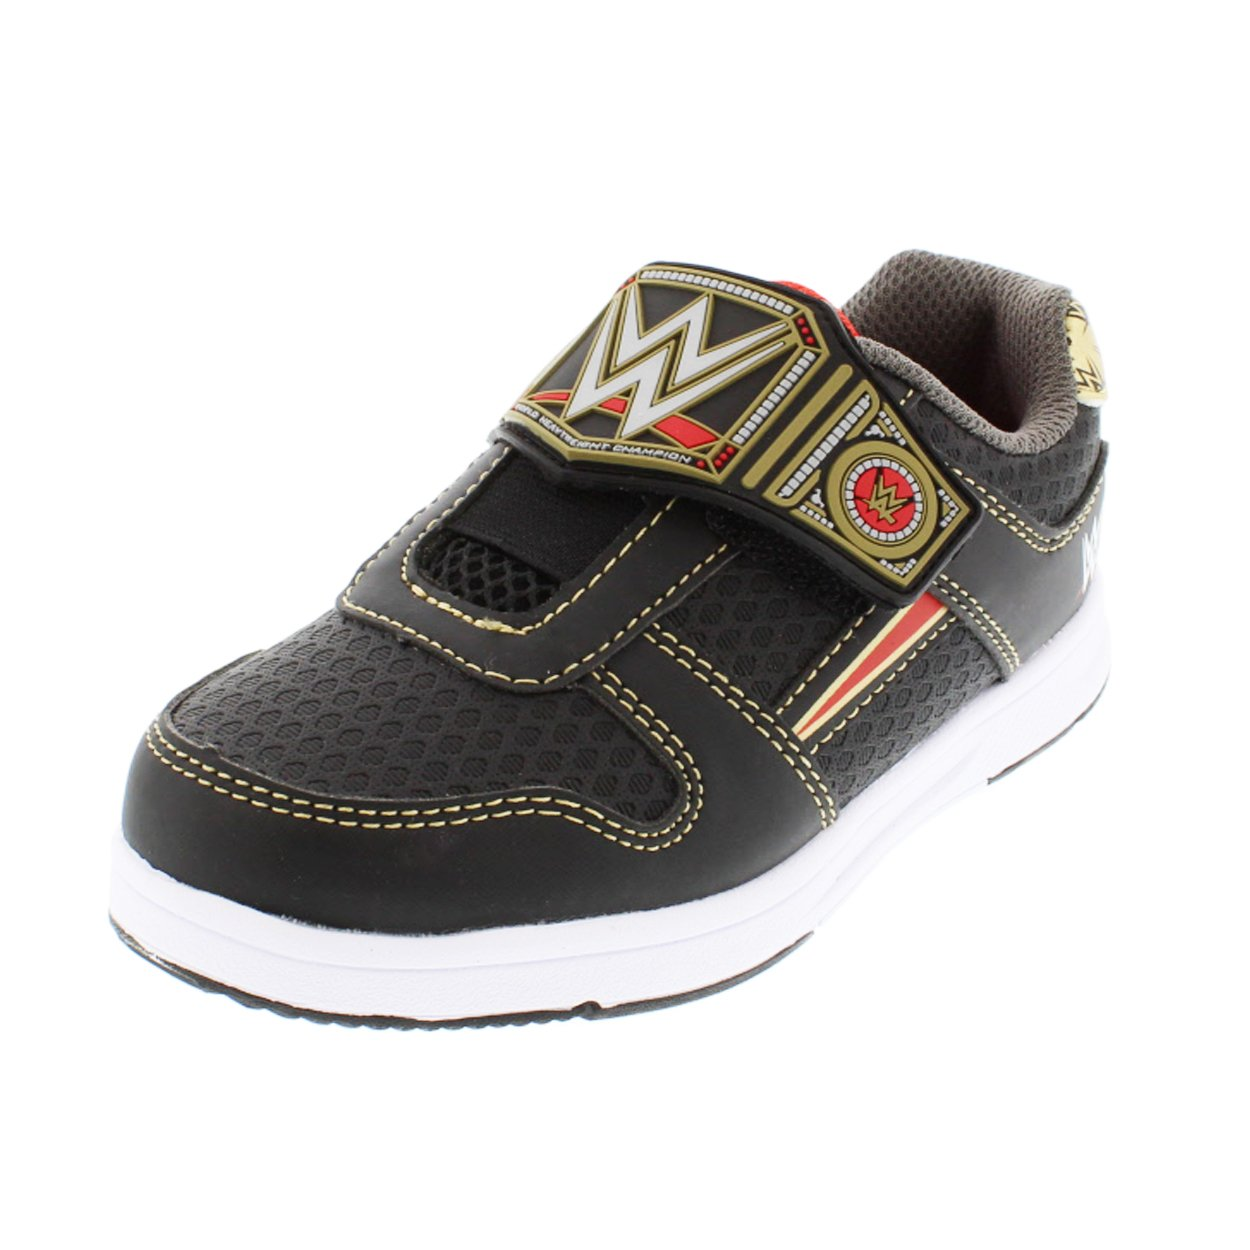 WWE Boys Championship Belt Black/Gold Athletic Shoe (10) by World Wrestling Entertainment